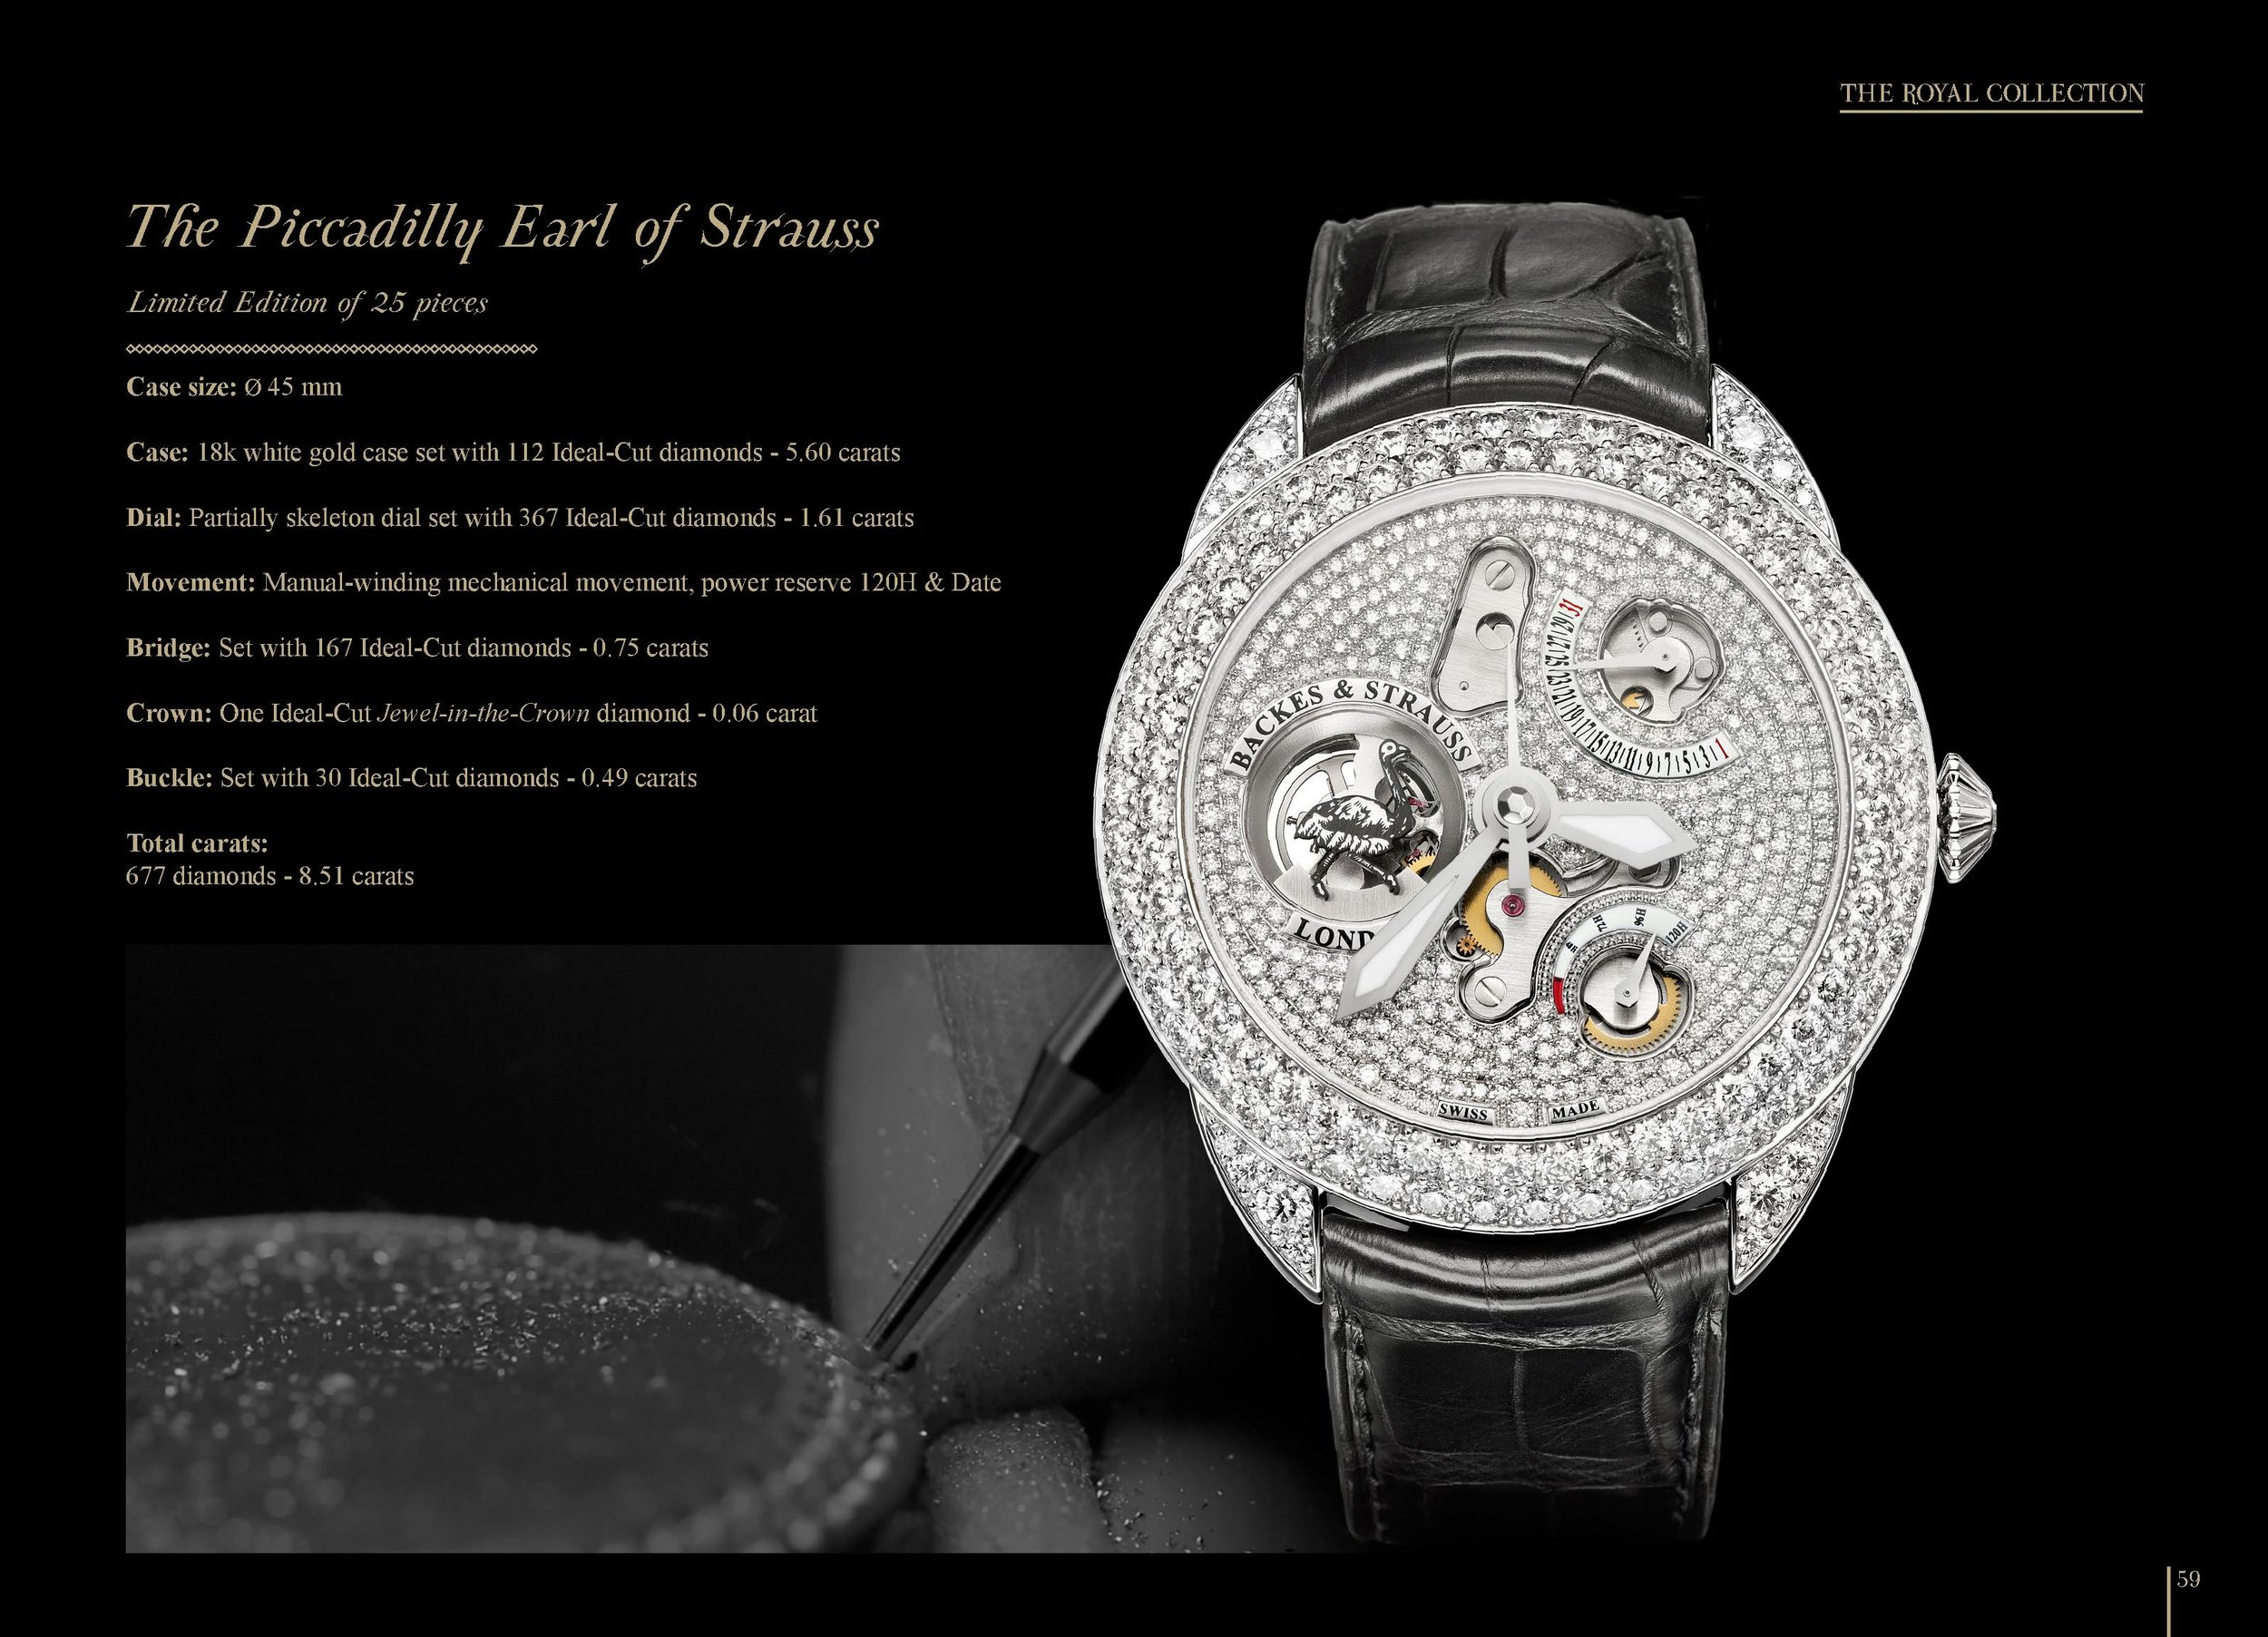 The Piccadilly Earl of Strauss limited edition watch